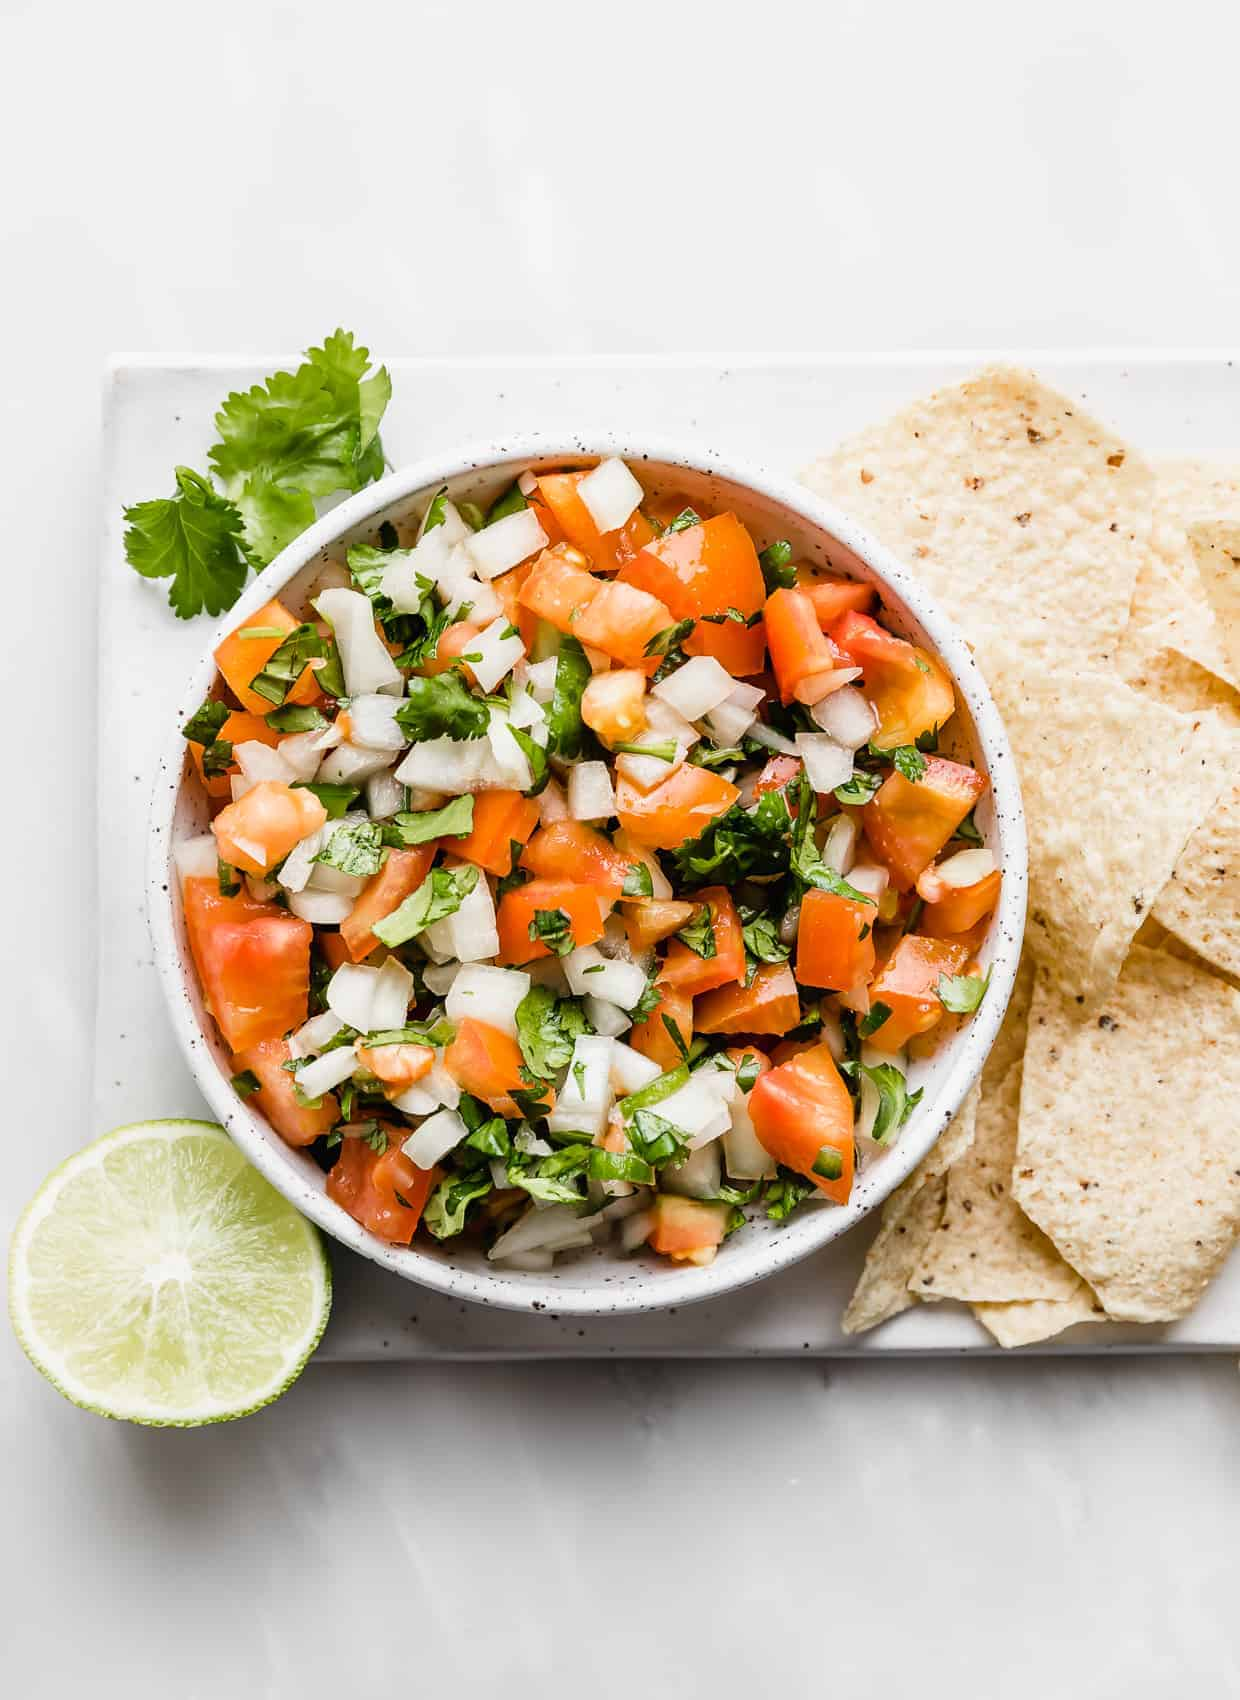 A bowl of Pico de Gallo surrounded by tortilla chips.